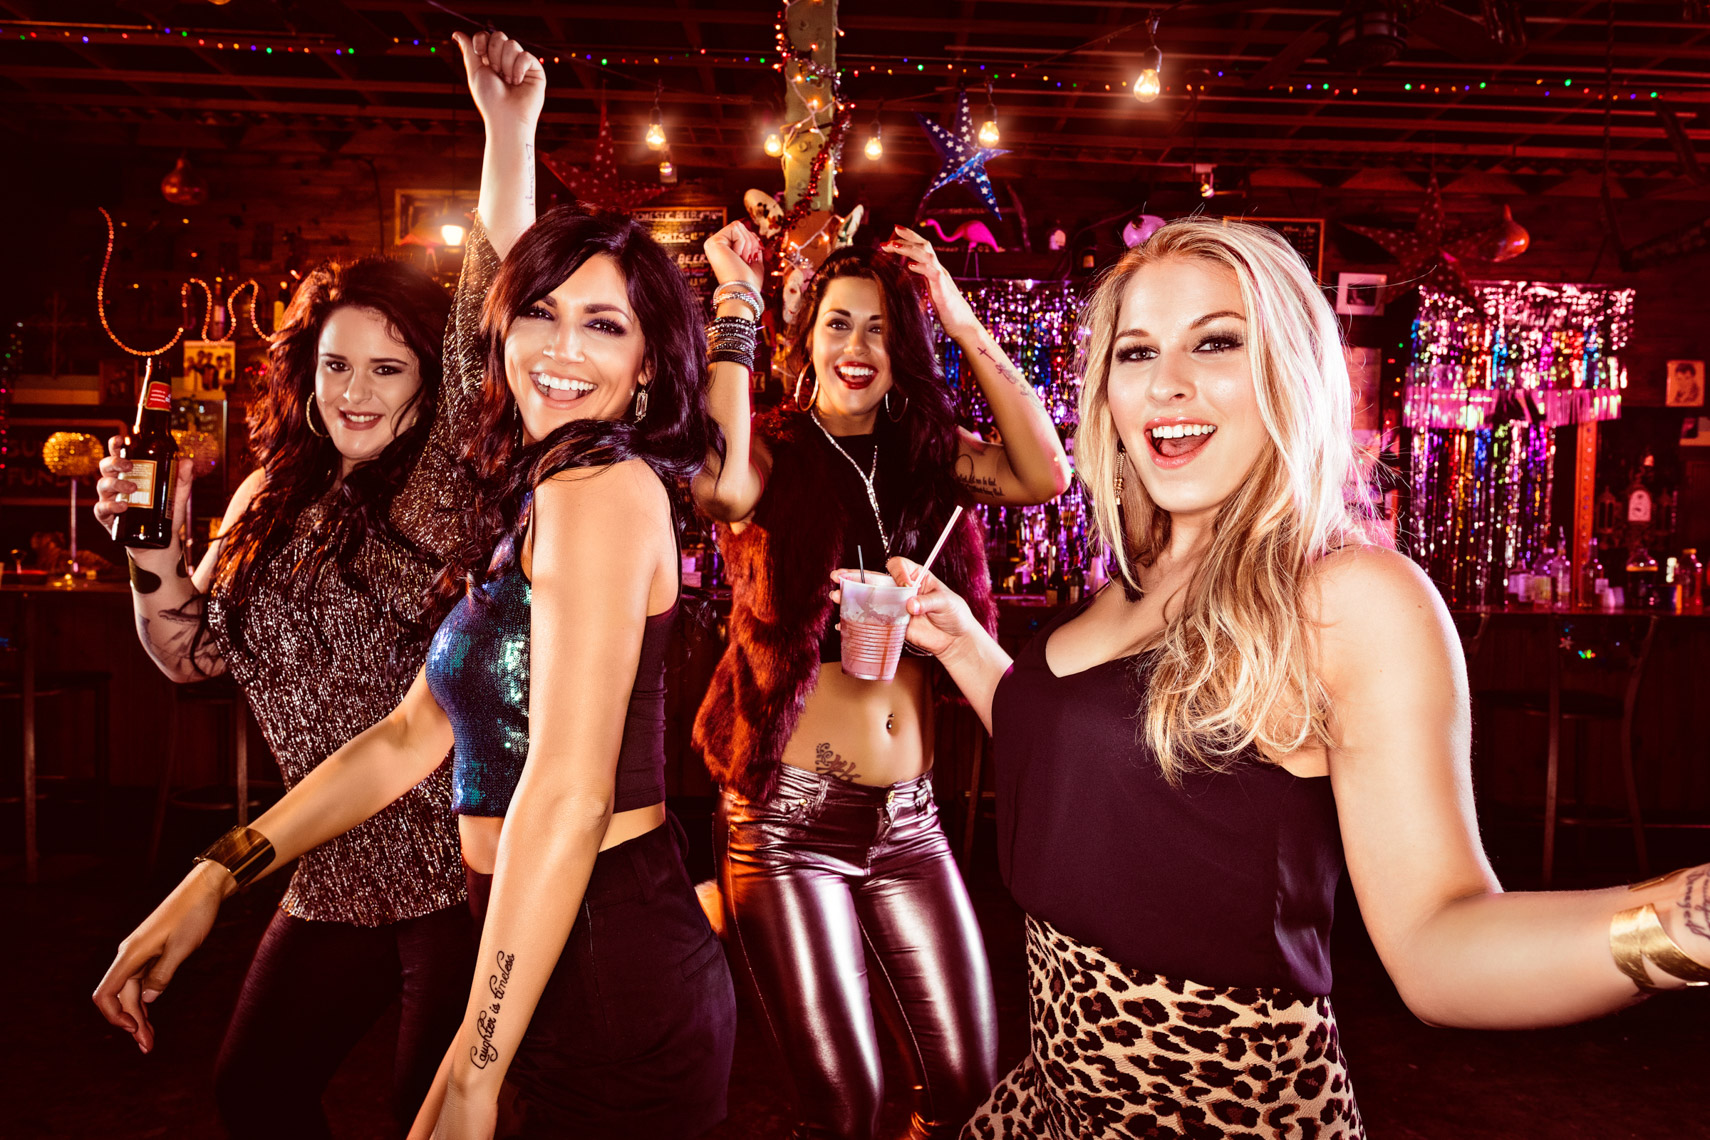 The ladies of Party Down South for CMT reality tv